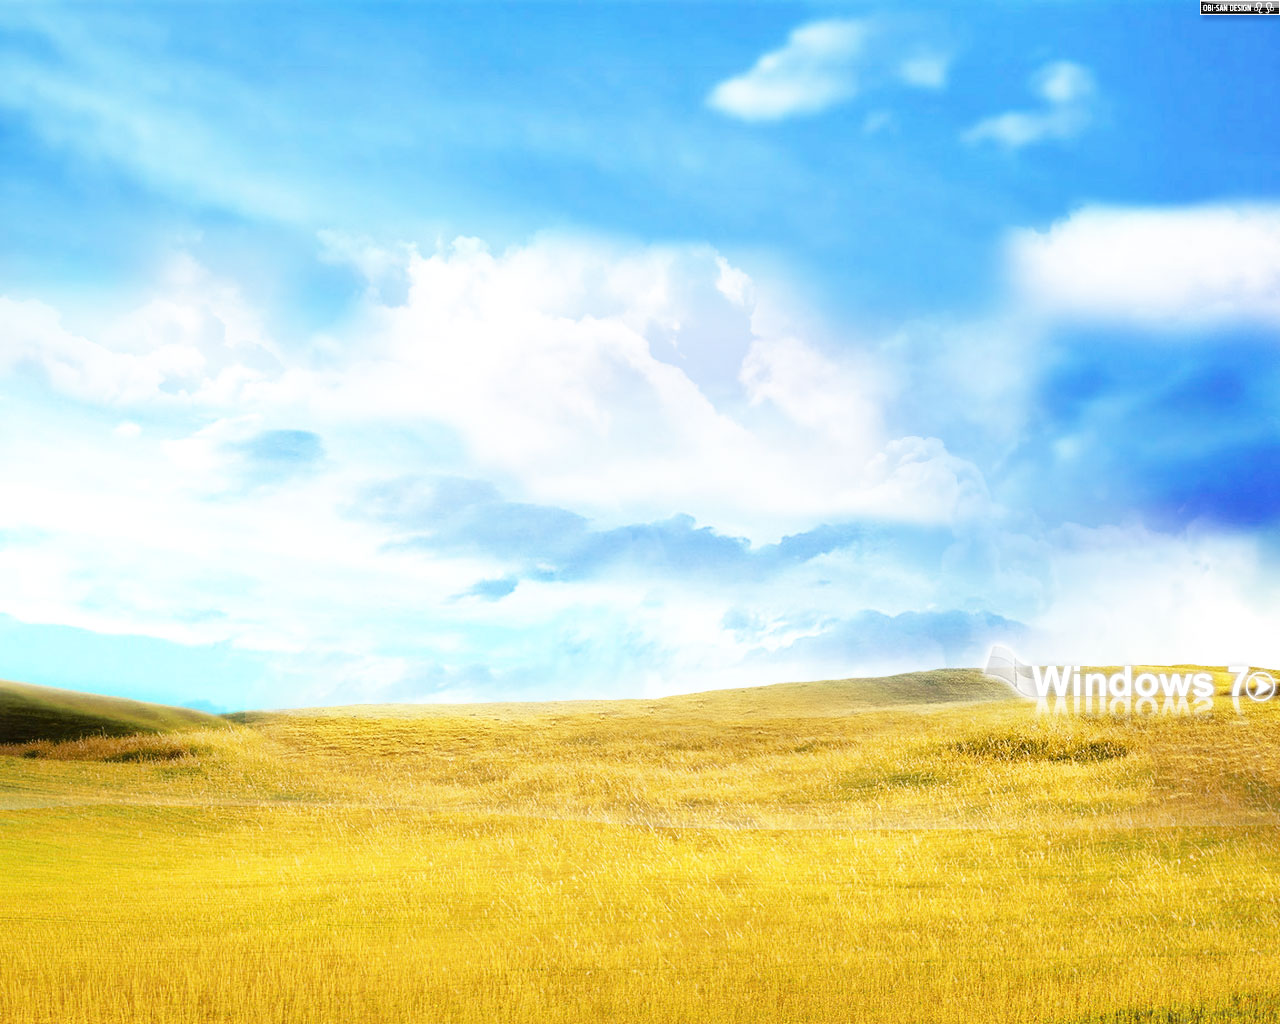 http://1.bp.blogspot.com/-4xpBBqU_Me8/TVaxnr-mvNI/AAAAAAAABWk/rSz5MvEbbCA/s1600/windows-7-wallpaper-046.jpg